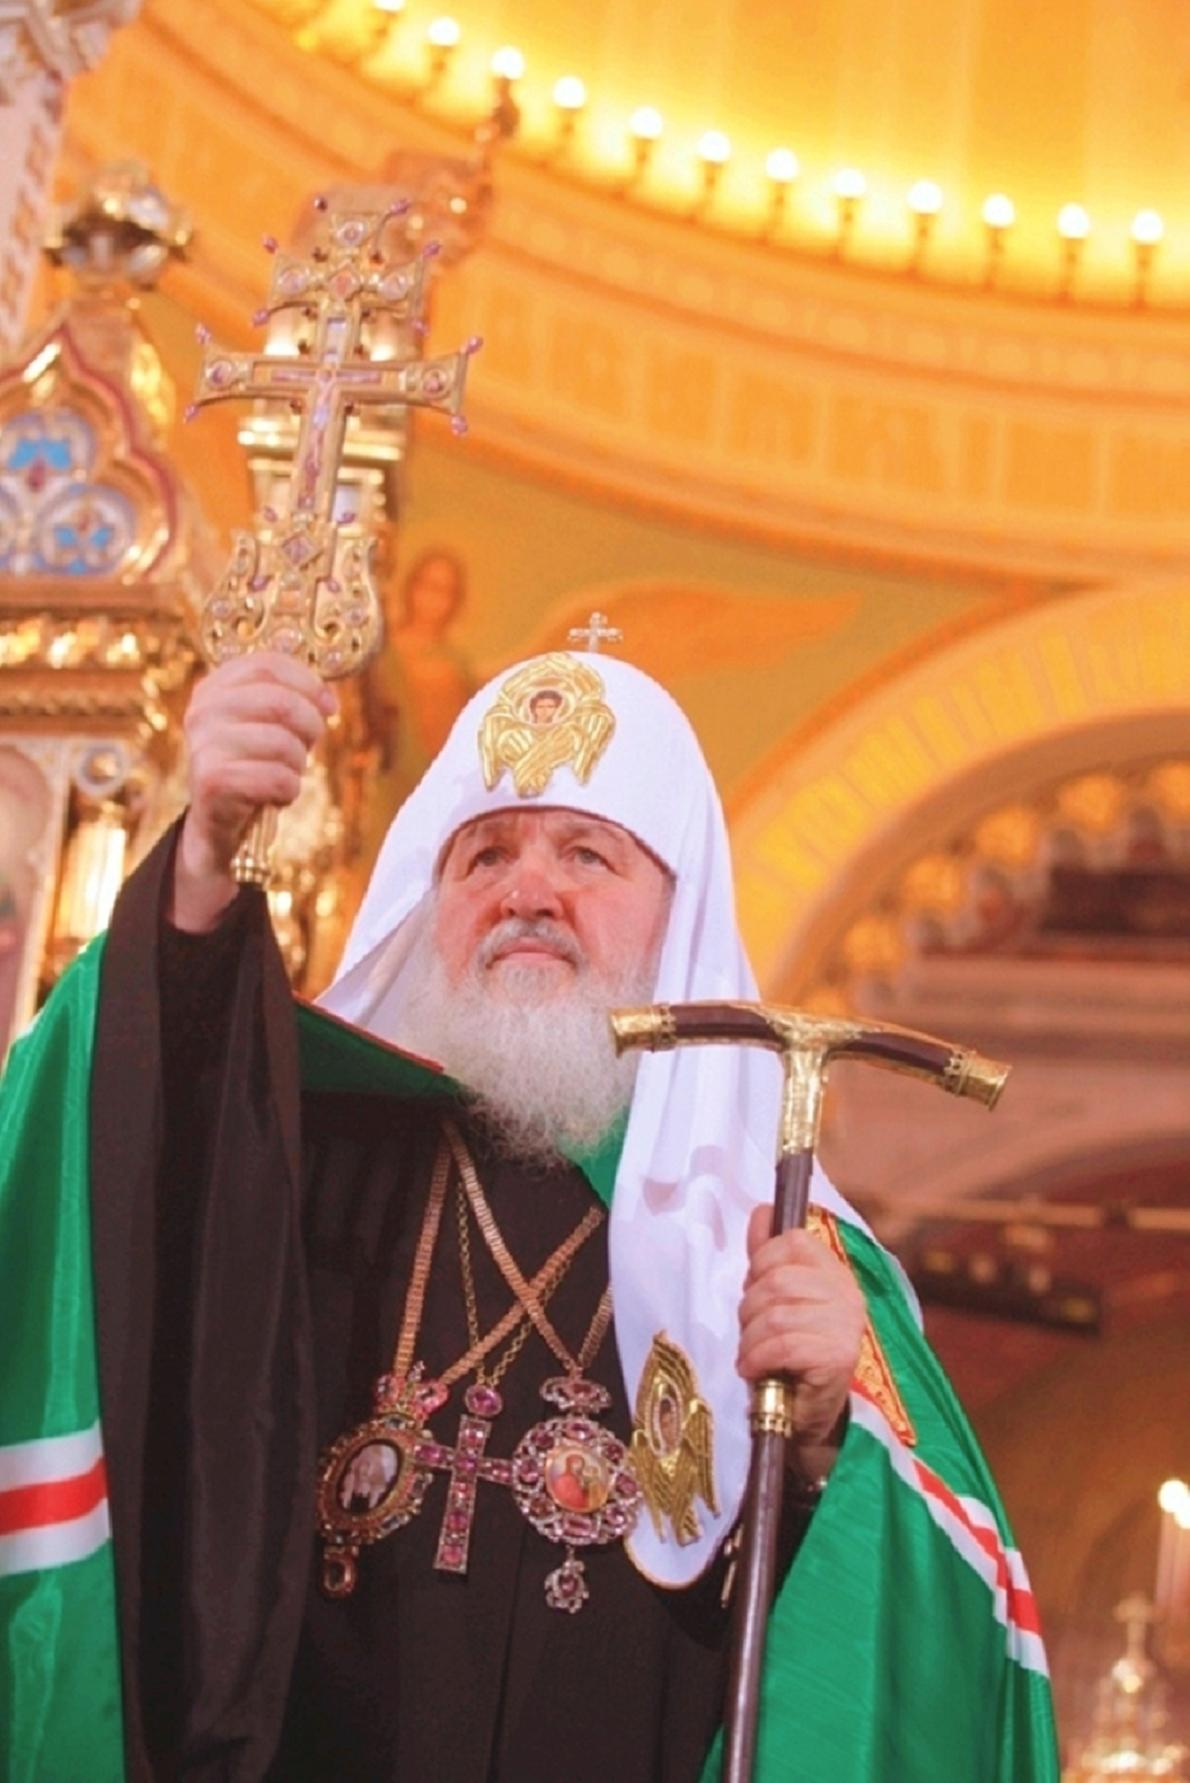 Patriarch Kirill is the first to receive an Orthodox luxury phone 01/19/2017 52